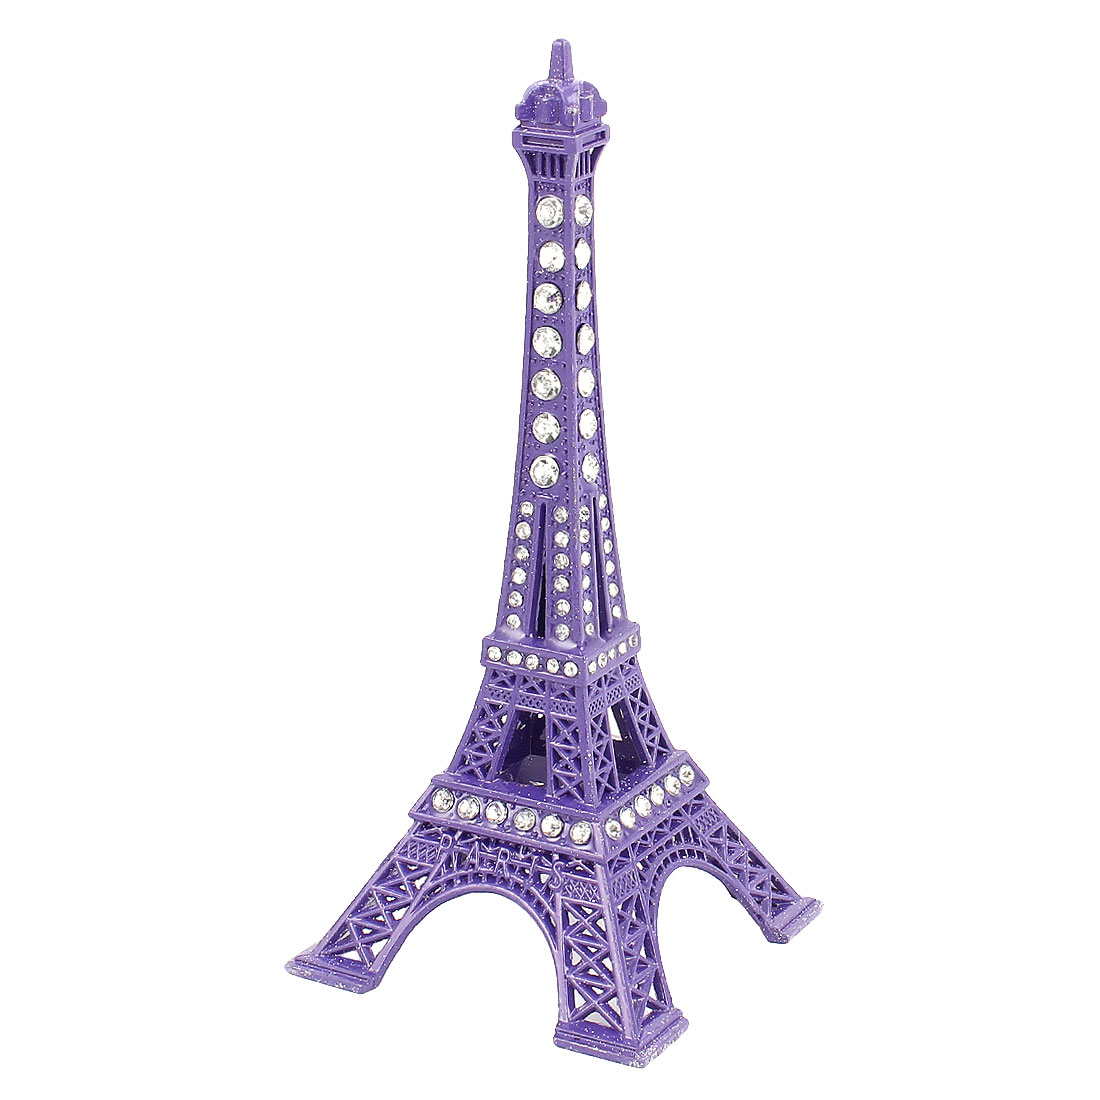 "Metal Mini France Paris Eiffel Tower Sculpture Statue Model Ornament 5"" 13cm Height Purple"